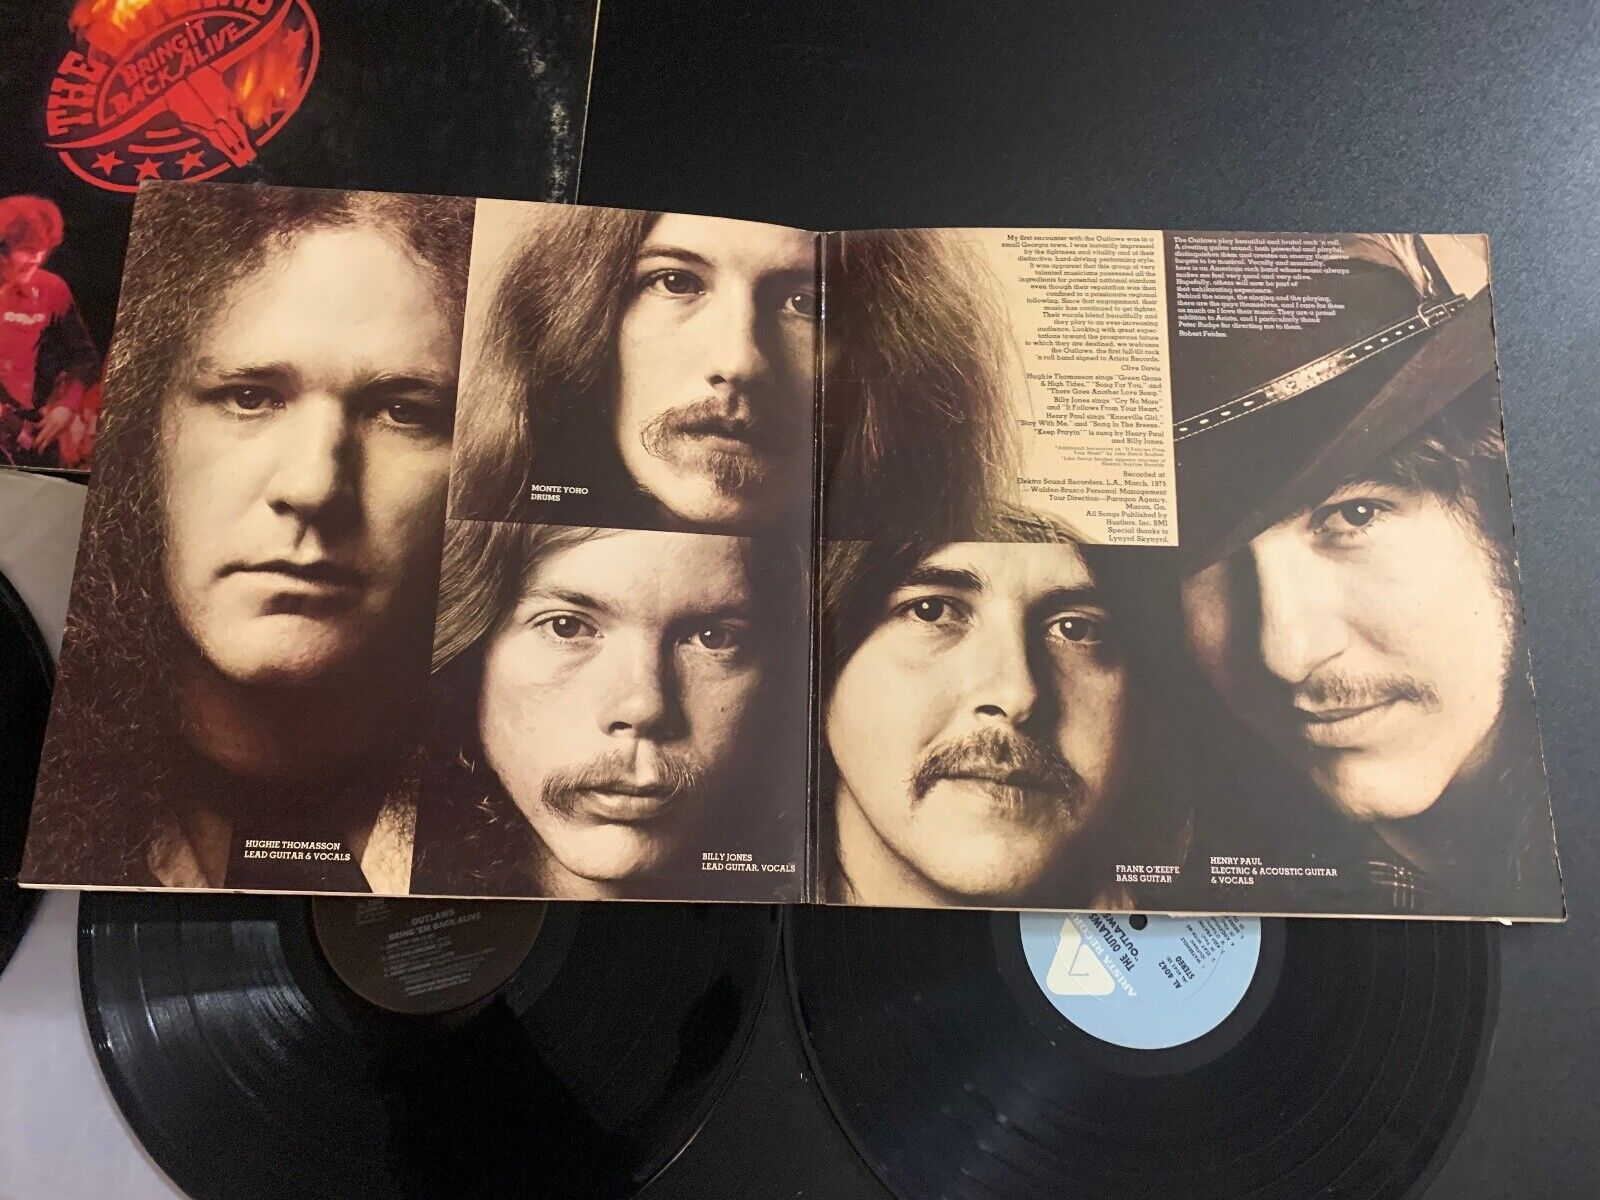 LOT OF 2 LPS RECORDS - THE OUTLAWS - BRING IT BACK ALIVE SELF TITLE ARISTA - $14.99